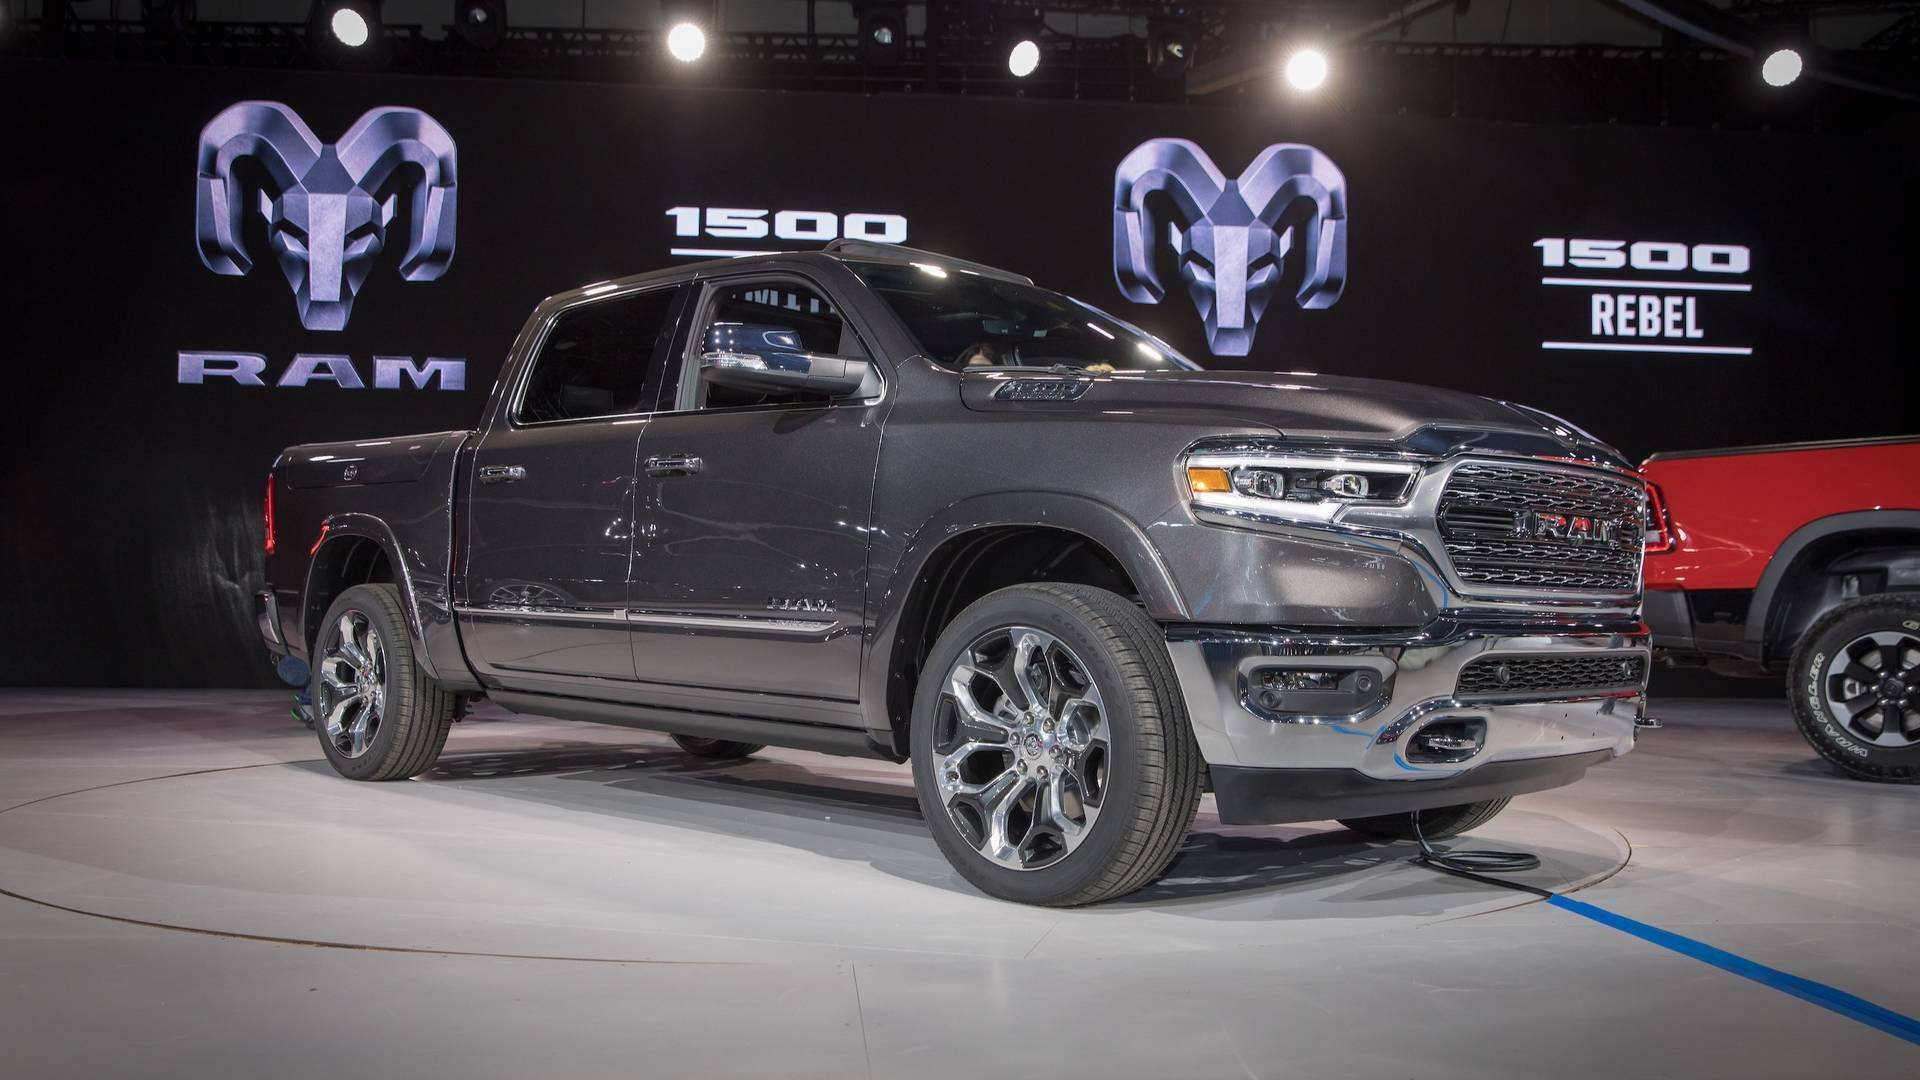 69 Gallery of 2019 Dodge Truck 1500 Price with 2019 Dodge Truck 1500